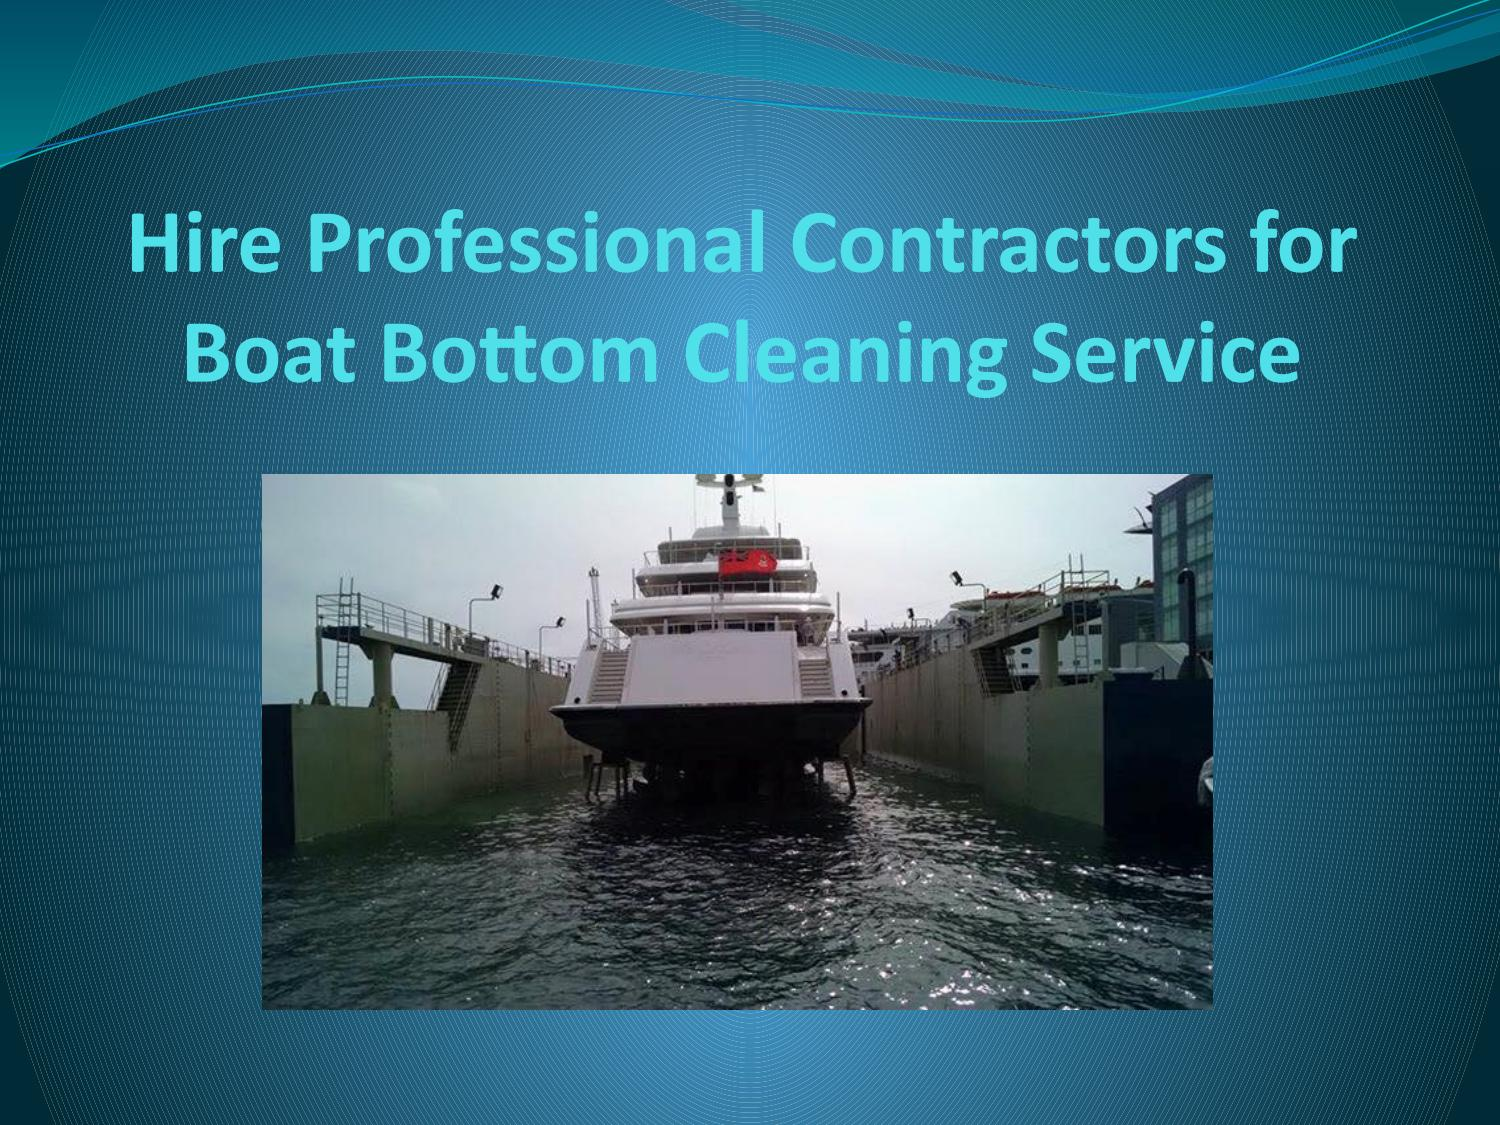 Hire Professional Contractors for Boat Bottom Cleaning Service by Barnacle  Busters - issuu